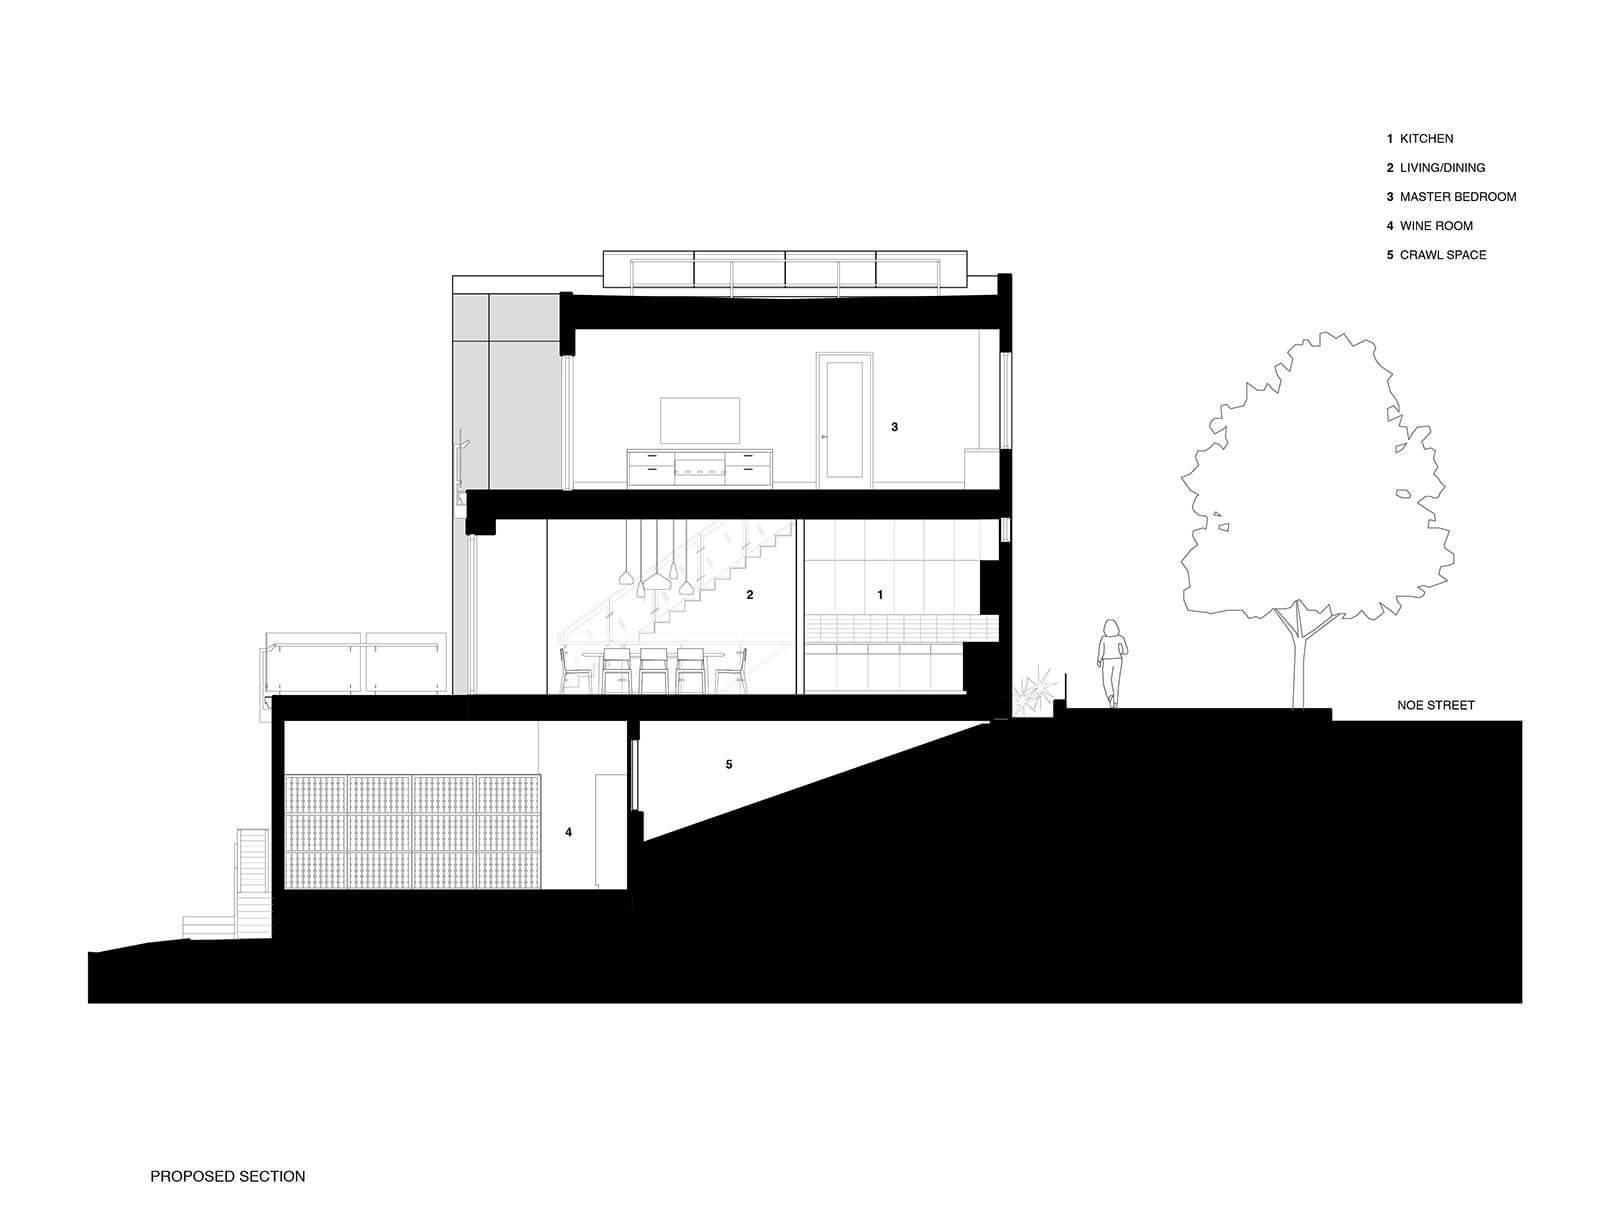 studio vara residential noe drawing section